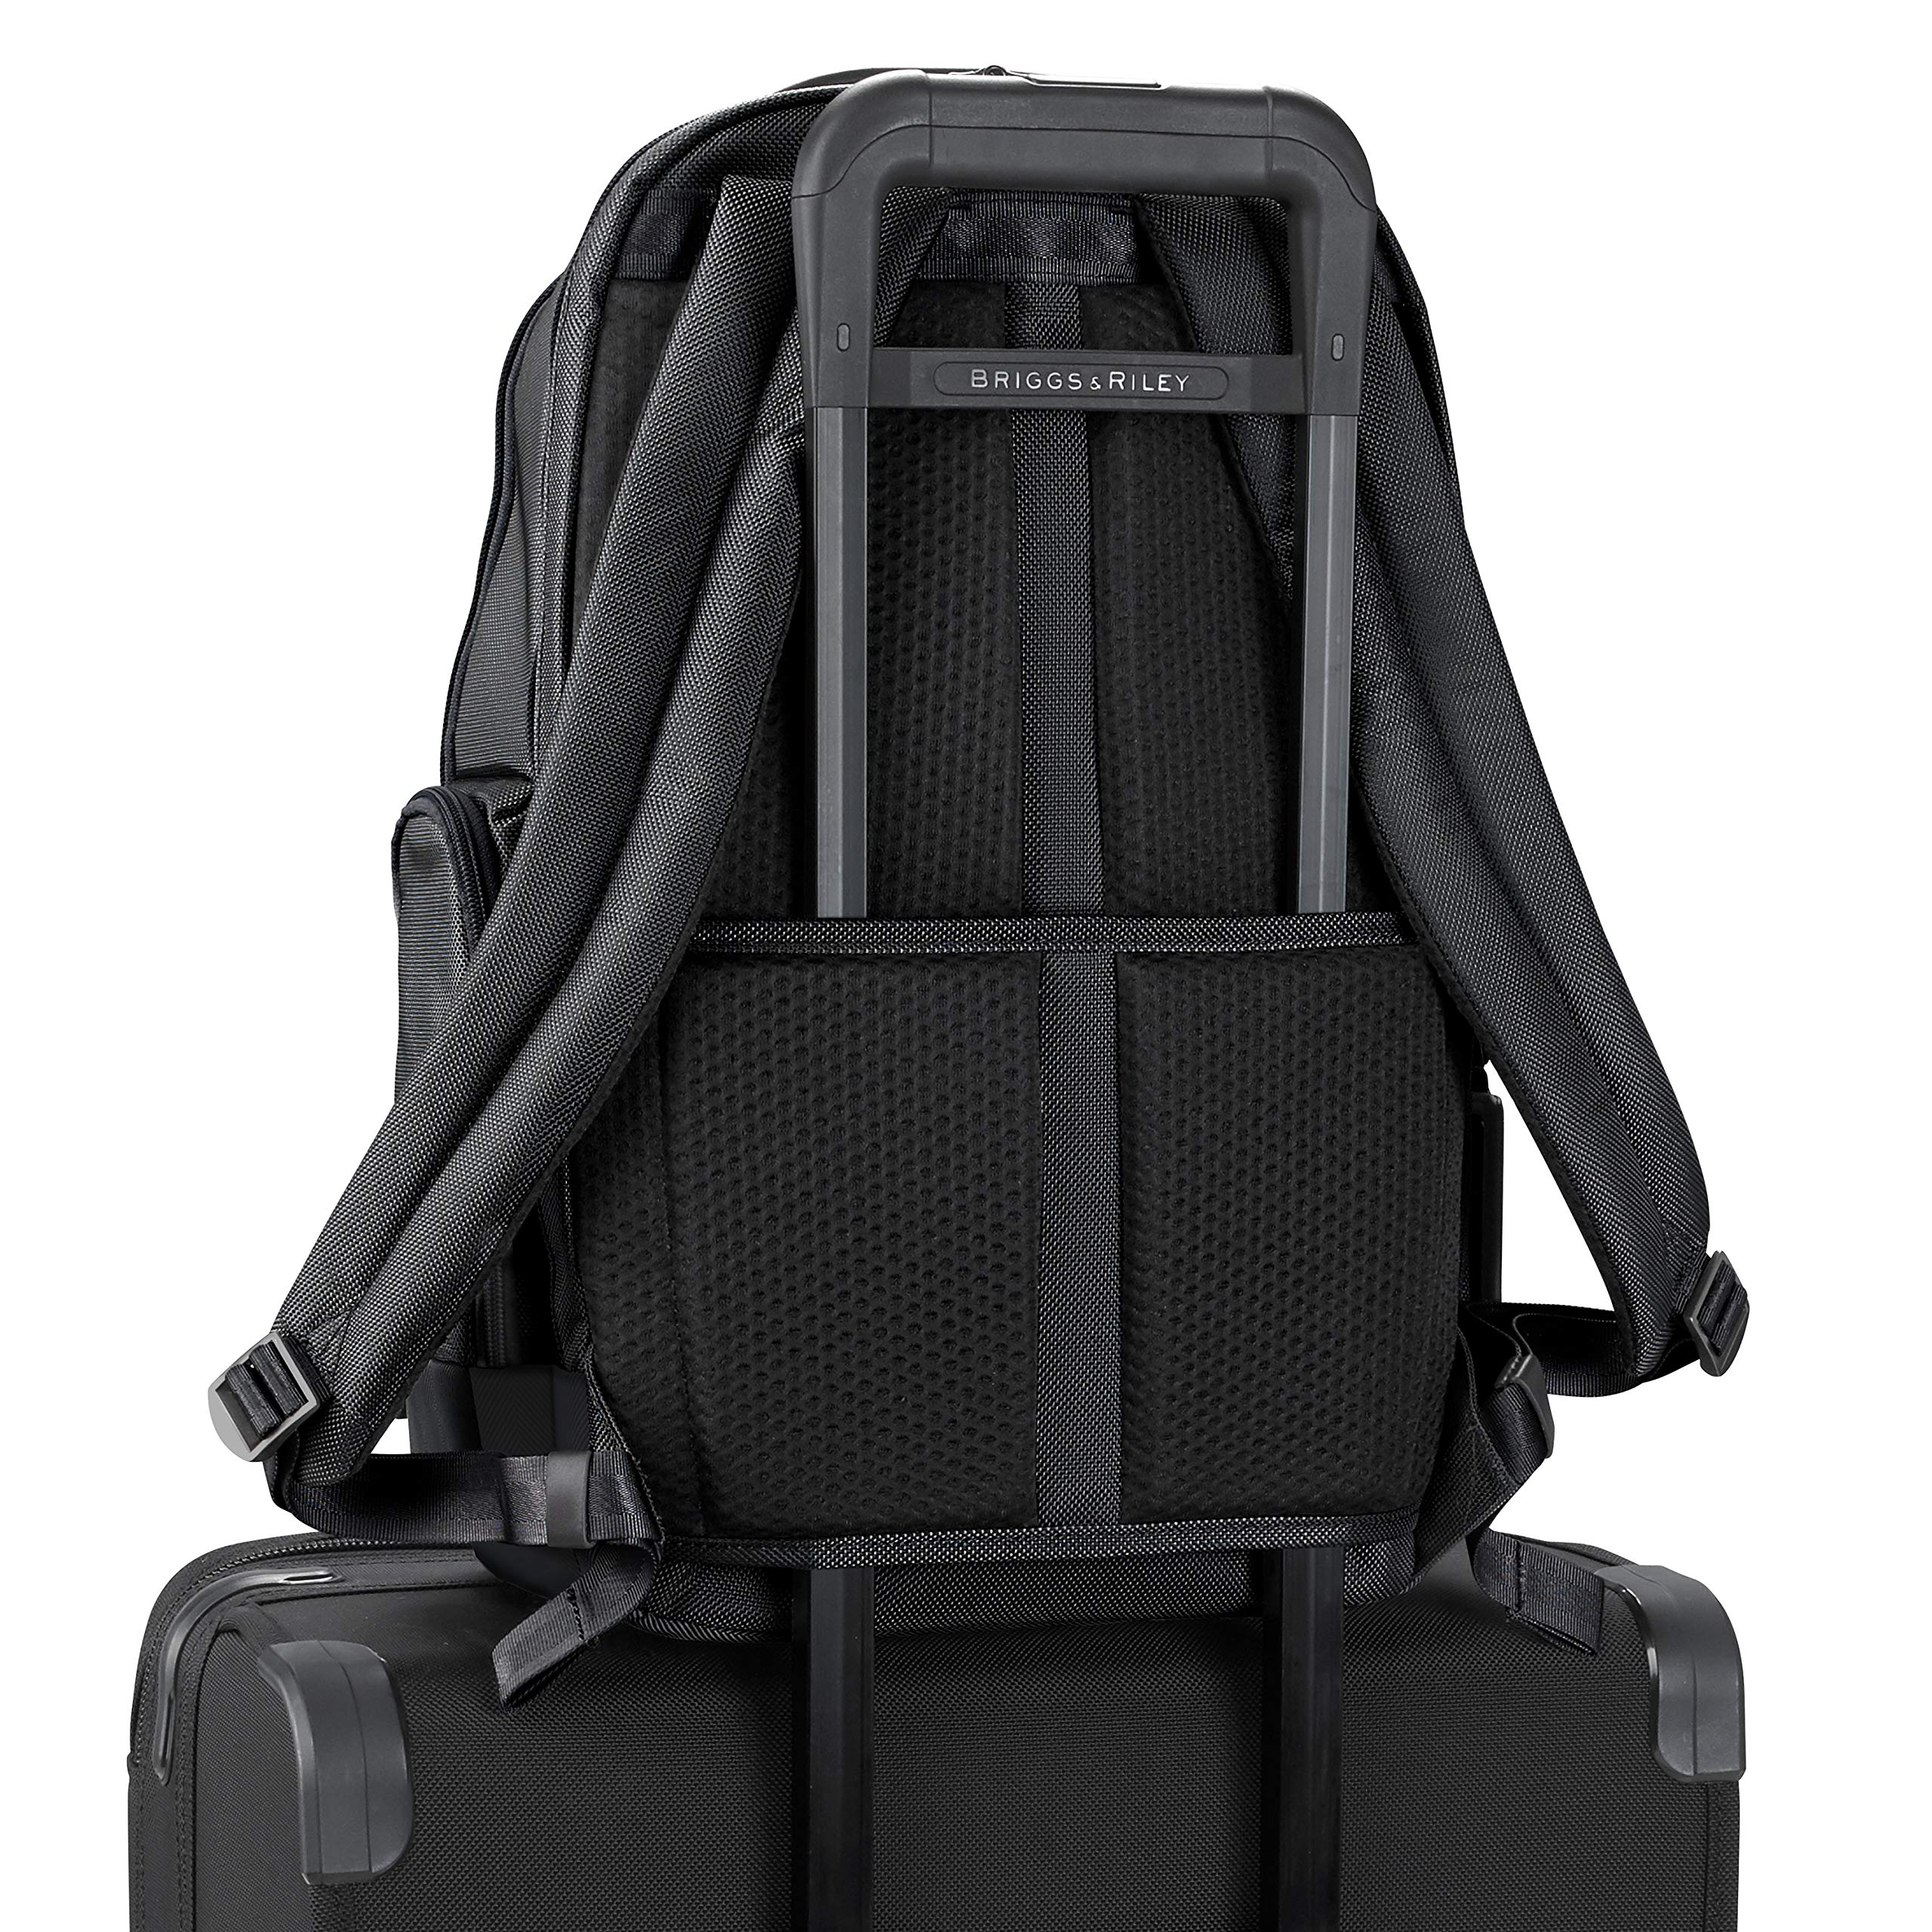 Briggs & Riley @work Medium Cargo Backpack, Black by Briggs & Riley (Image #9)